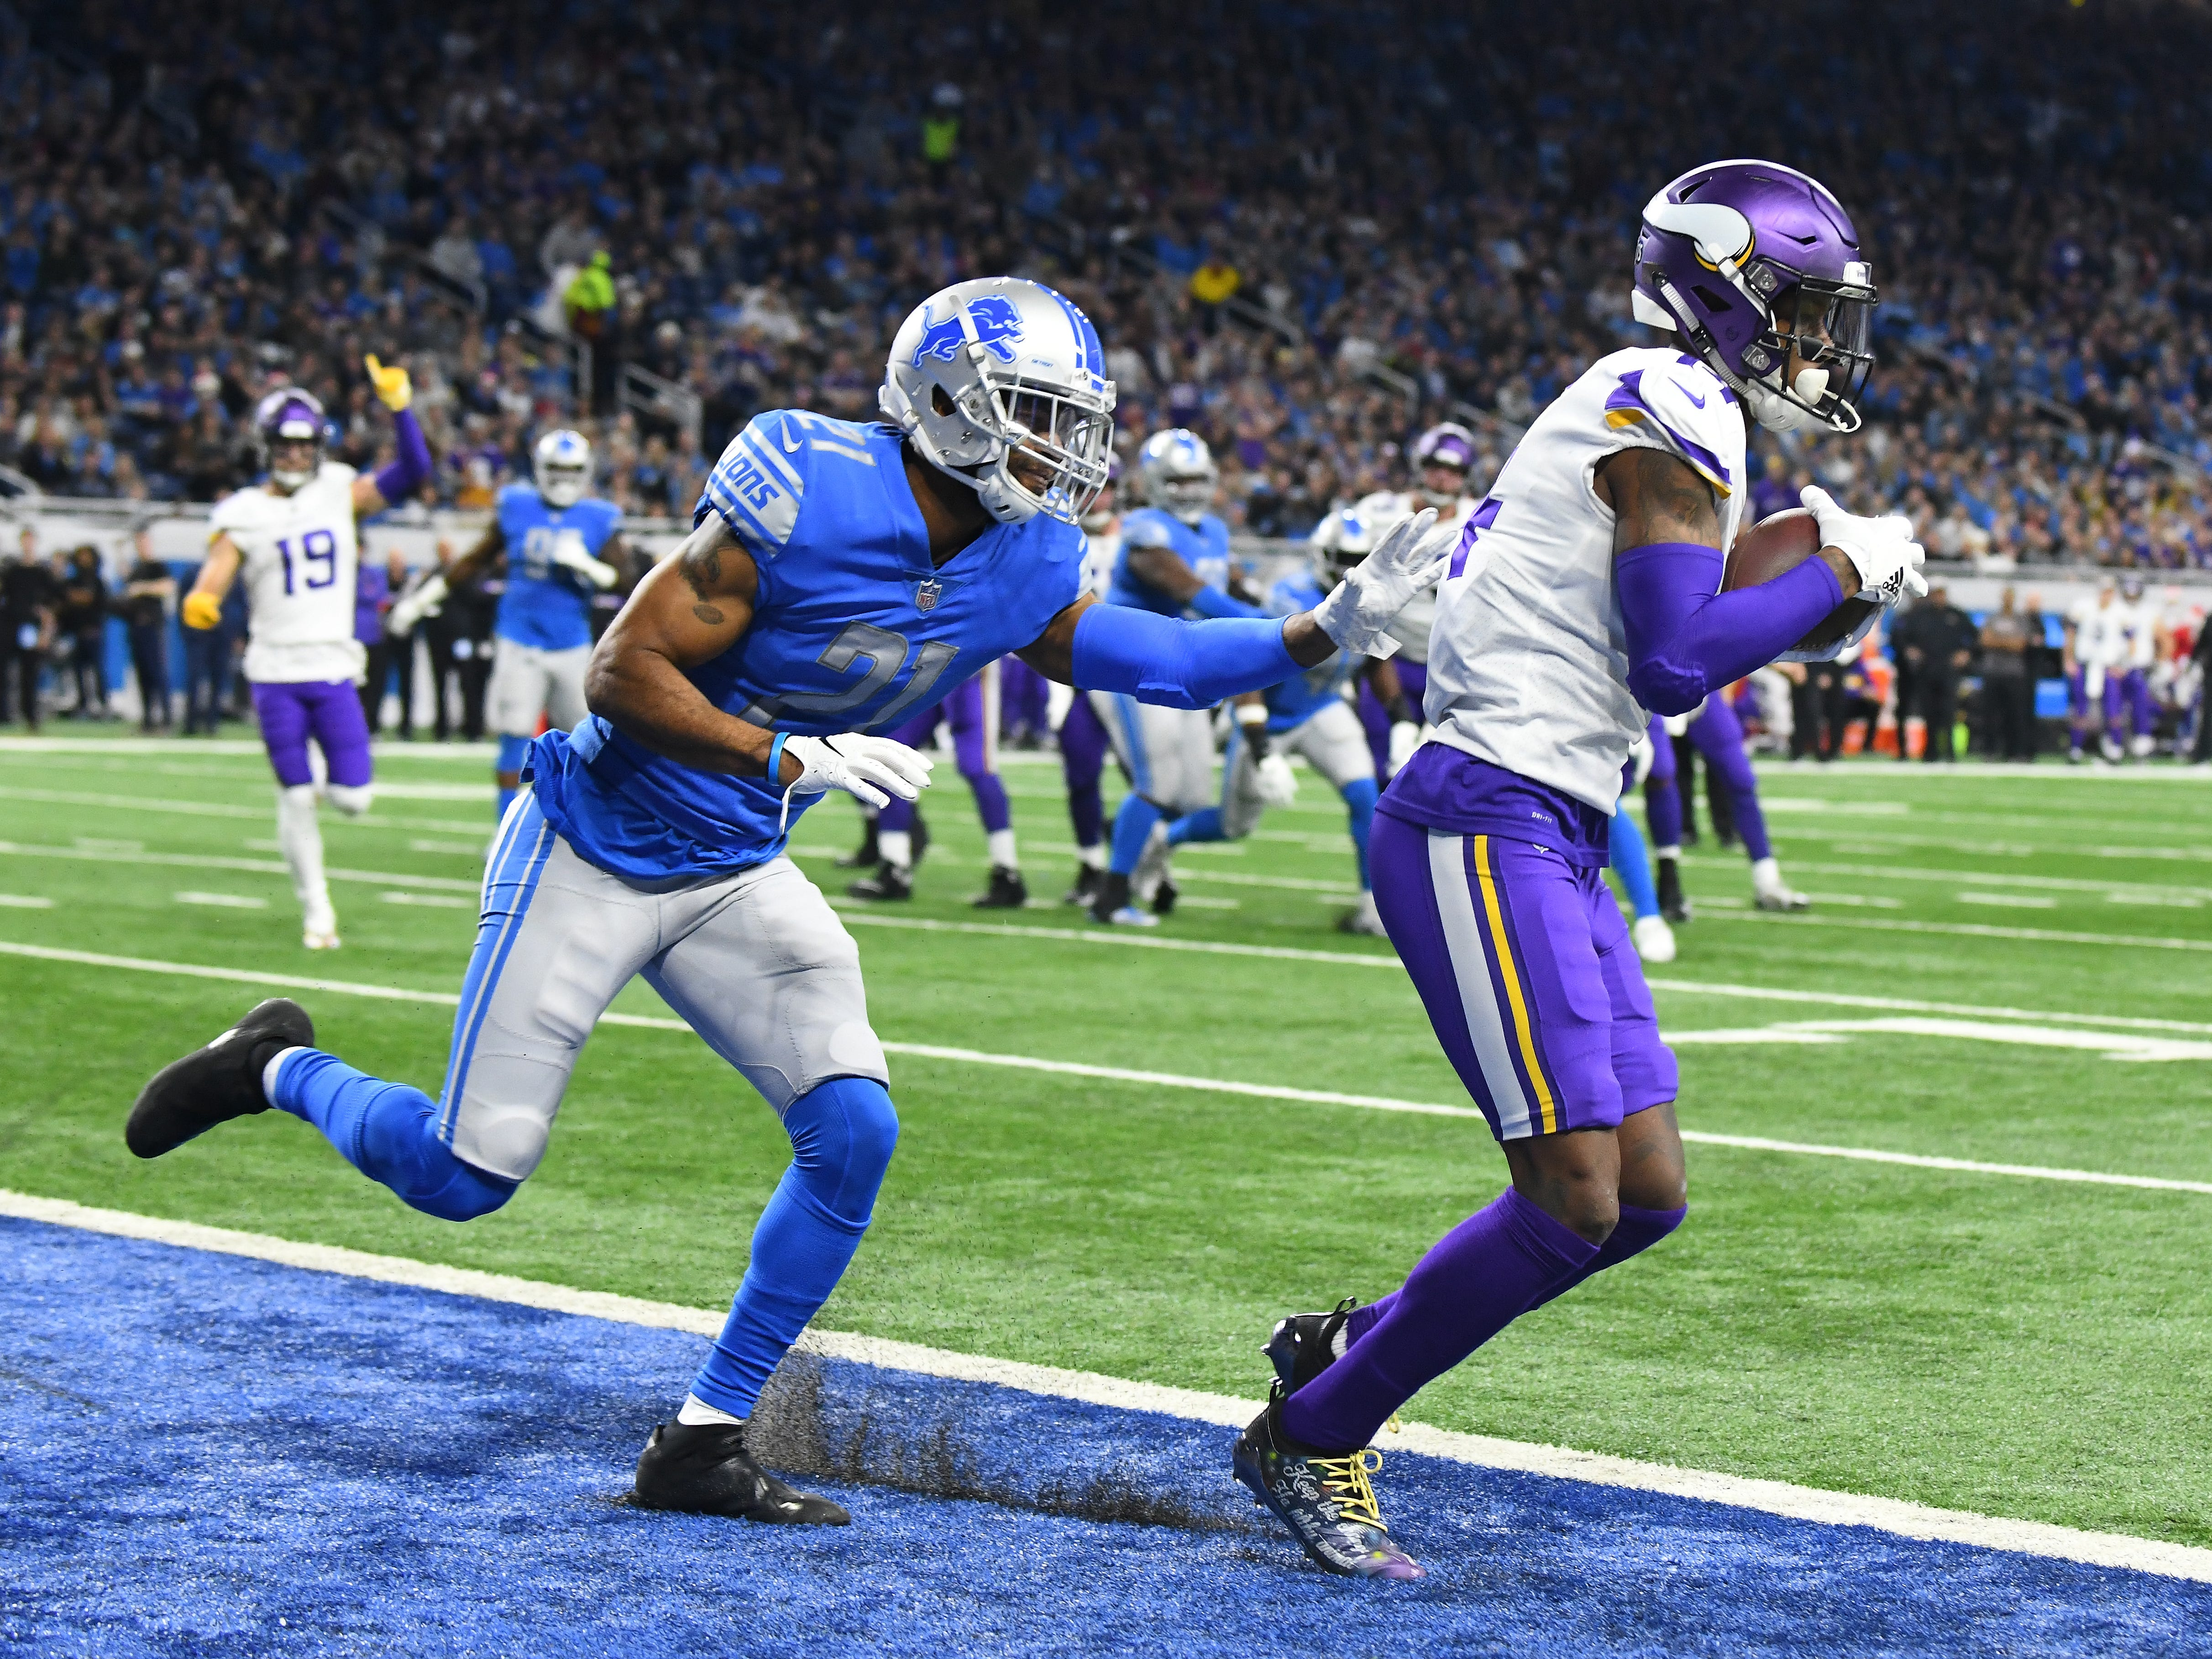 Vikings' Stefon Diggs pulls a reception in the endzone for a touchdown in front of Lions' Marcus Cooper Sr. in the second quarter.